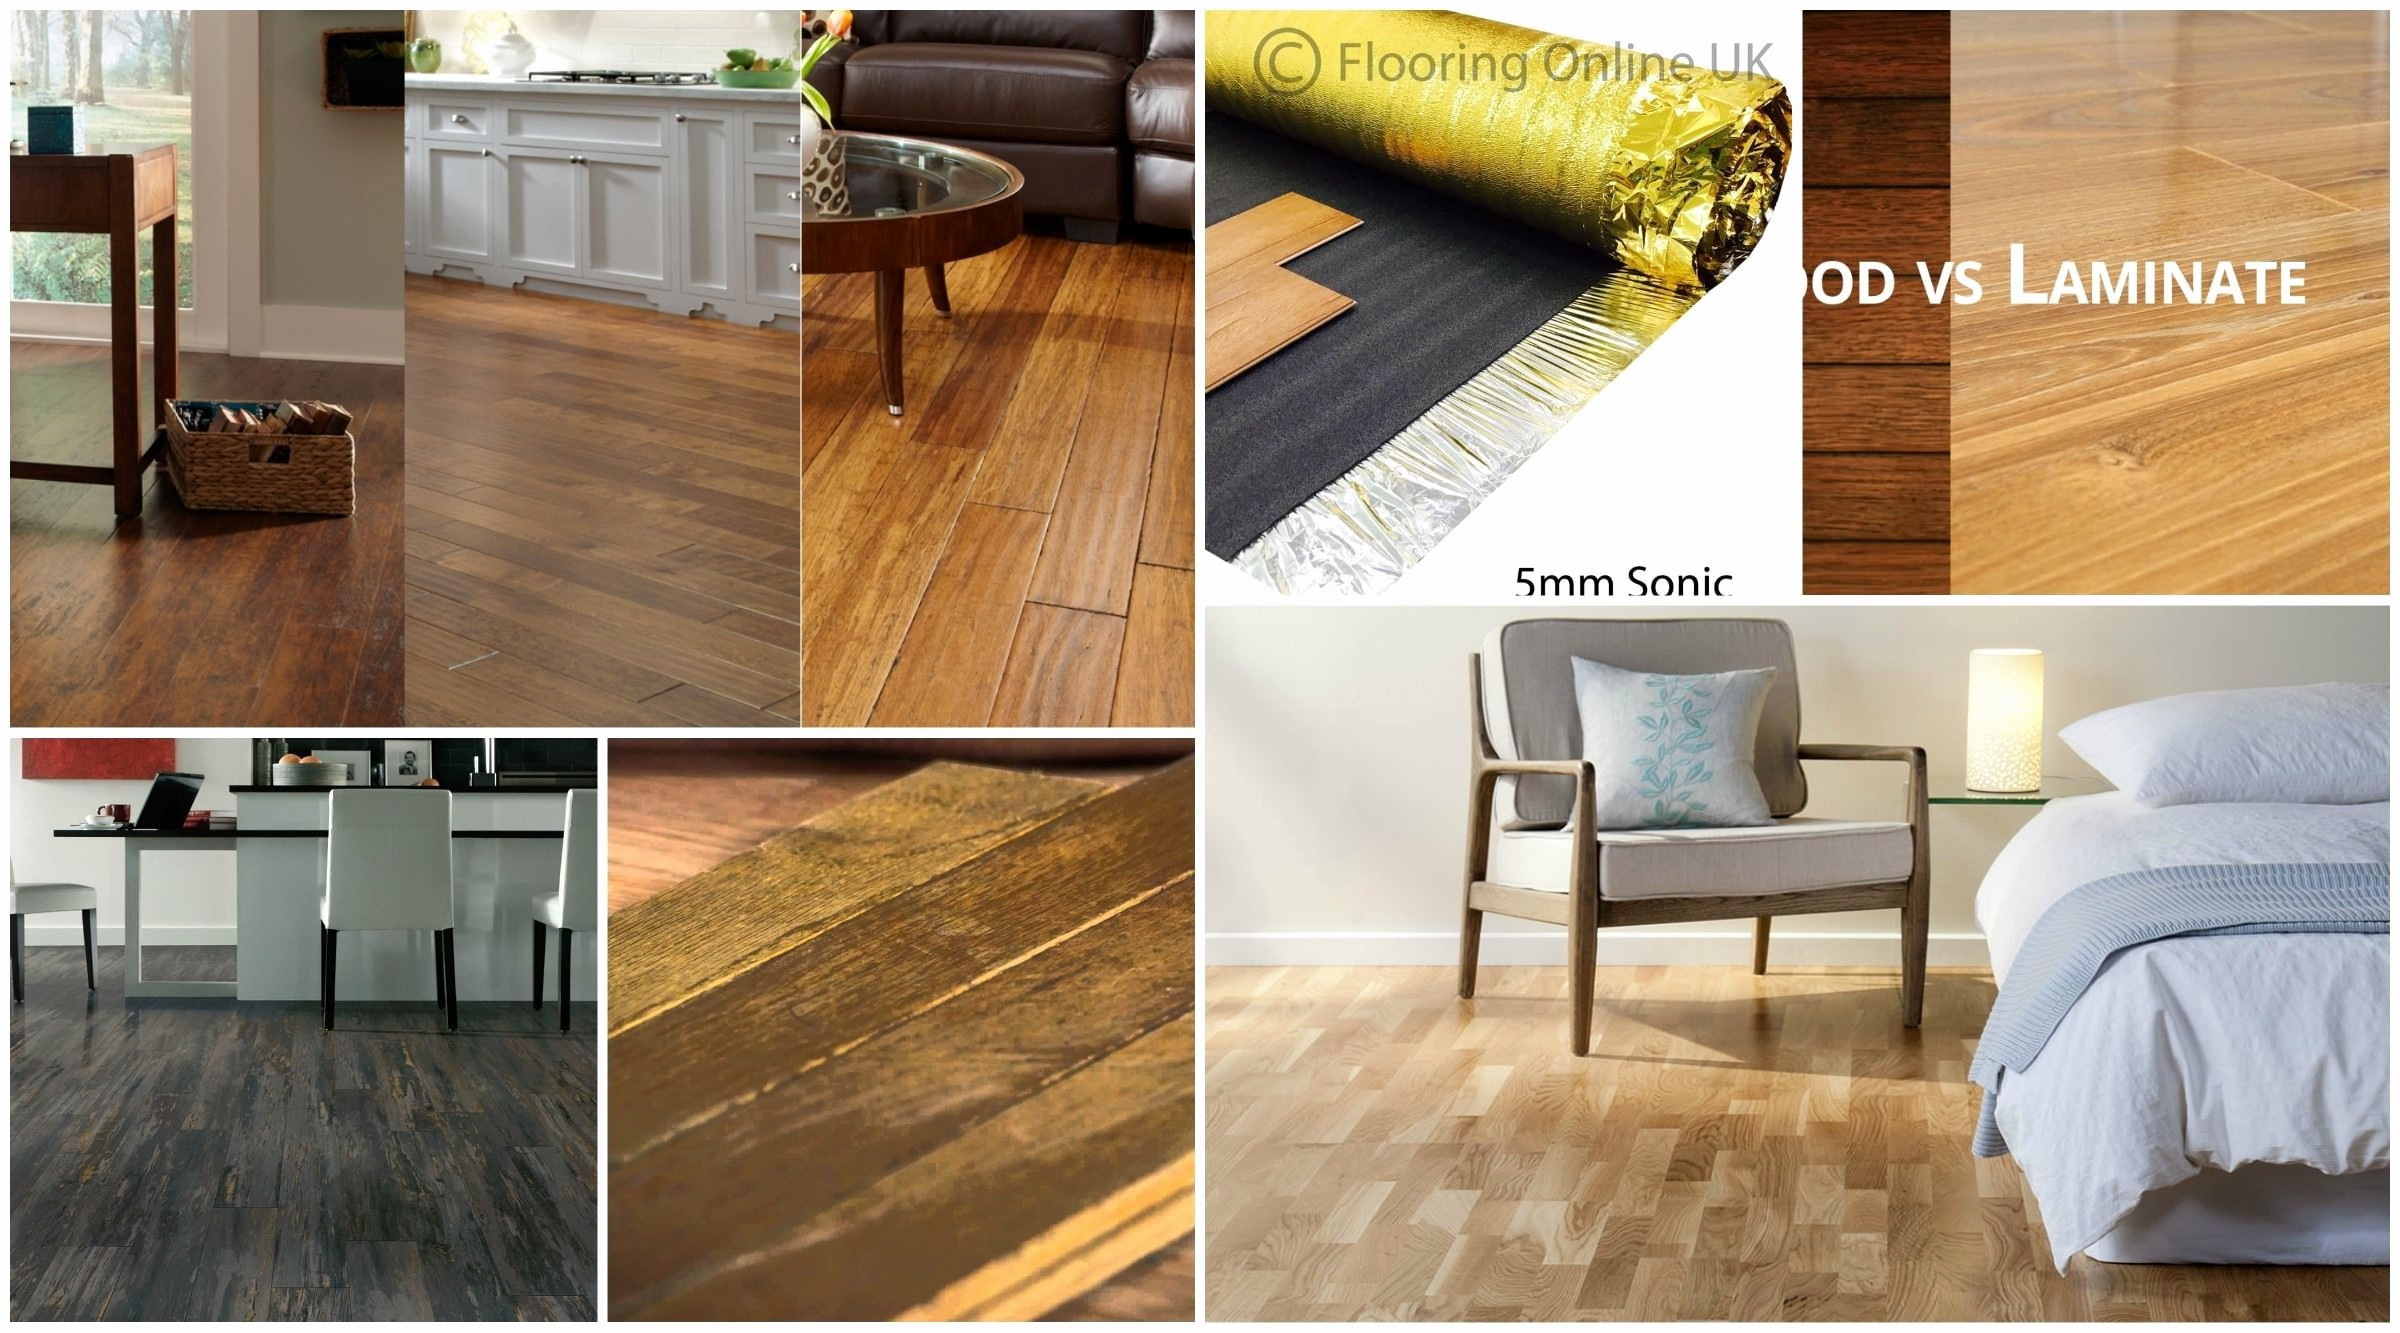 lowes solid oak hardwood flooring of 17 inspirational lowes carpet installation photos dizpos com for 50 inspirational vinyl wood flooring lowes pics 50 s